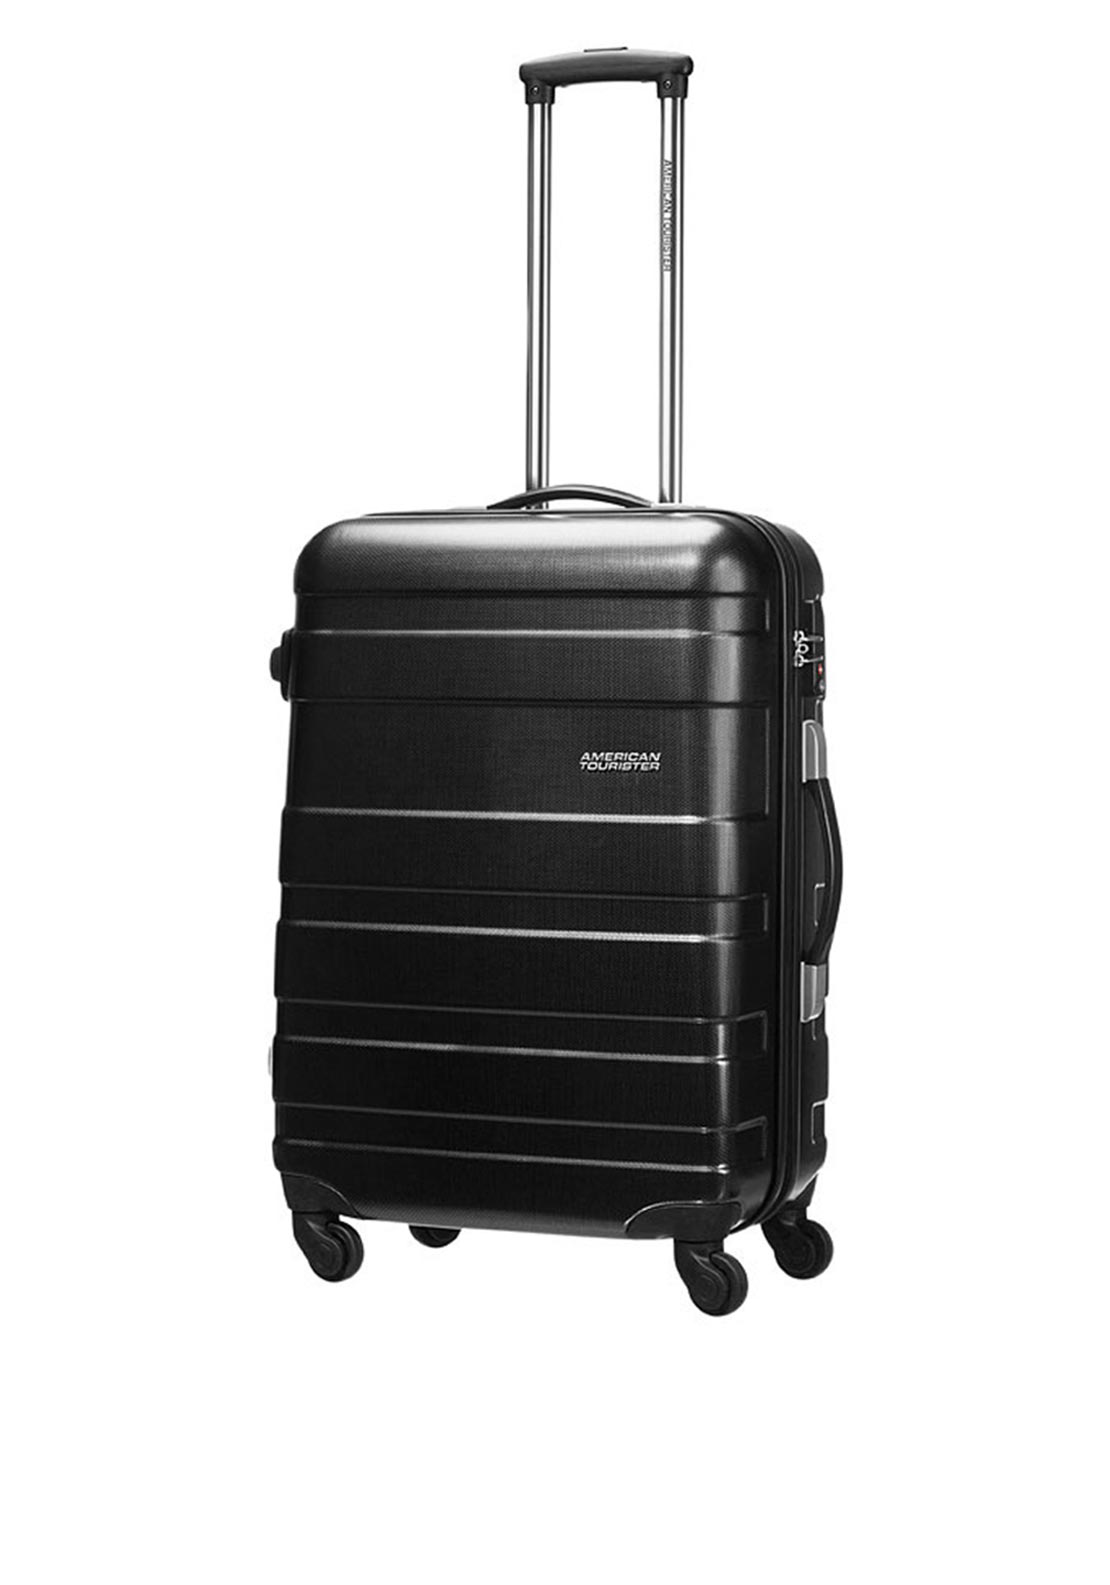 American Tourister Pasadena Spinner Large 77cm Suitcase, Black and Gold